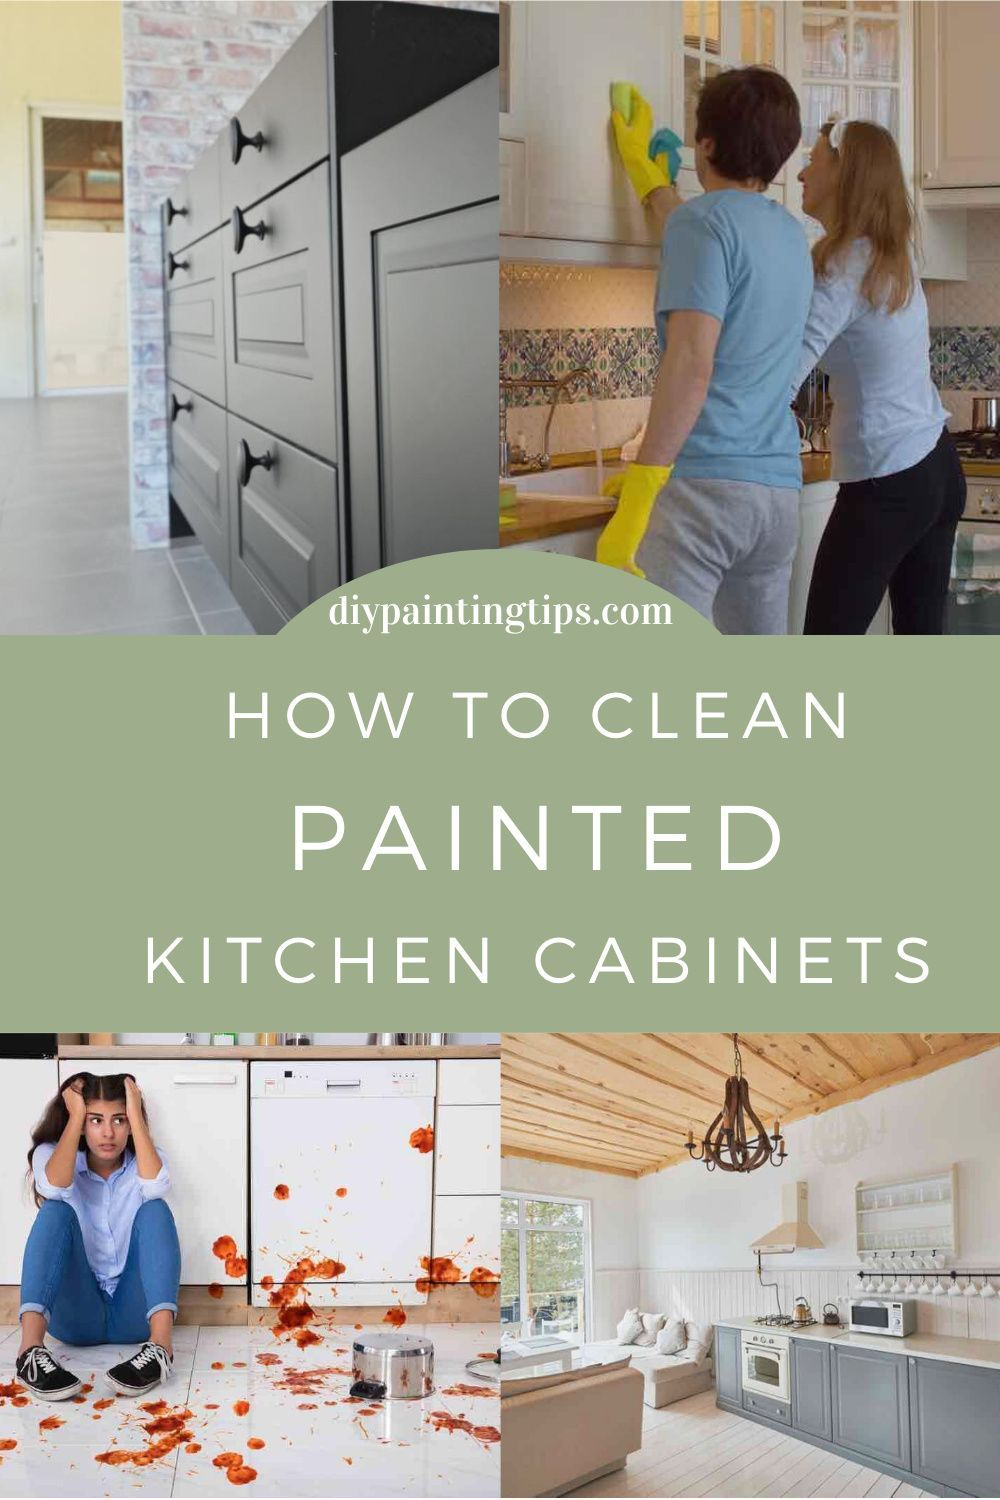 The Essential How To Clean Painted Cabinets Guide In 2020 Painting Cabinets Cleaning Cabinets Painting Kitchen Cabinets